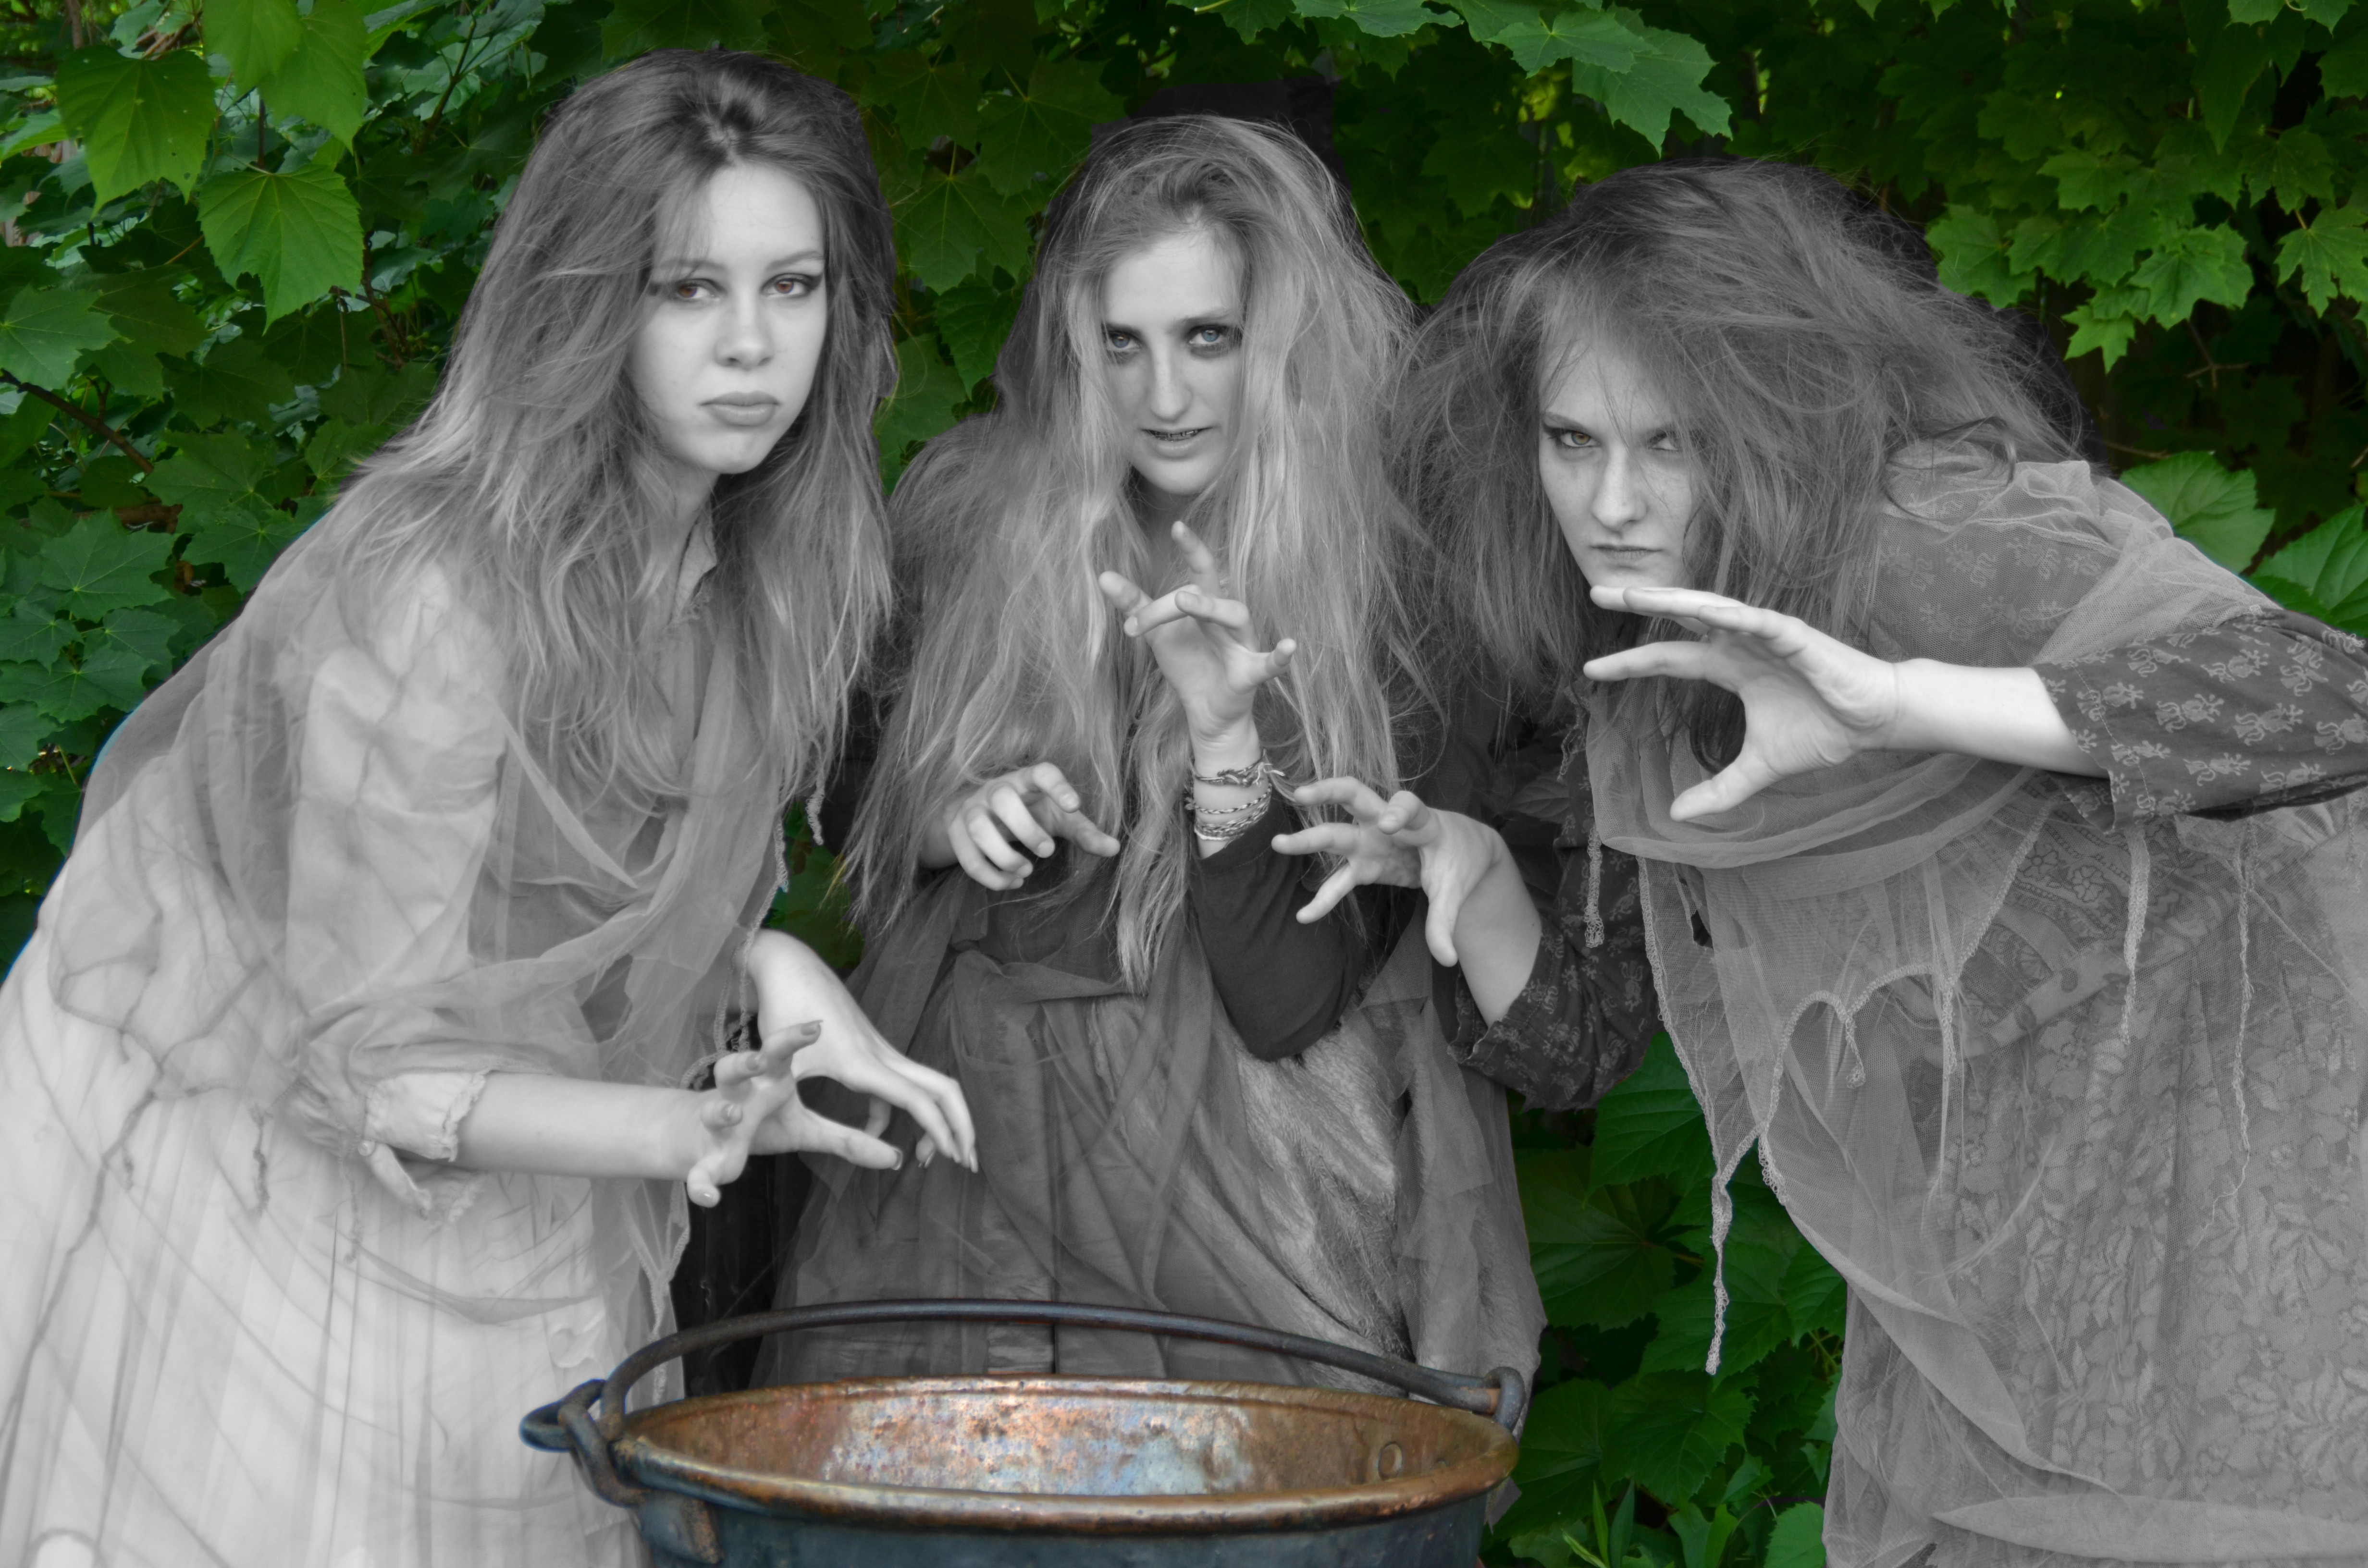 witches in macbeth power of evil The relationship between macbeth and the witches although most modern readers would agree that duncan's murder is a direct result of macbeth's ambition coupled with the pressure placed on him by lady macbeth, jacobean audiences would have had a much different view, placing blame squarely on the powers of darkness.